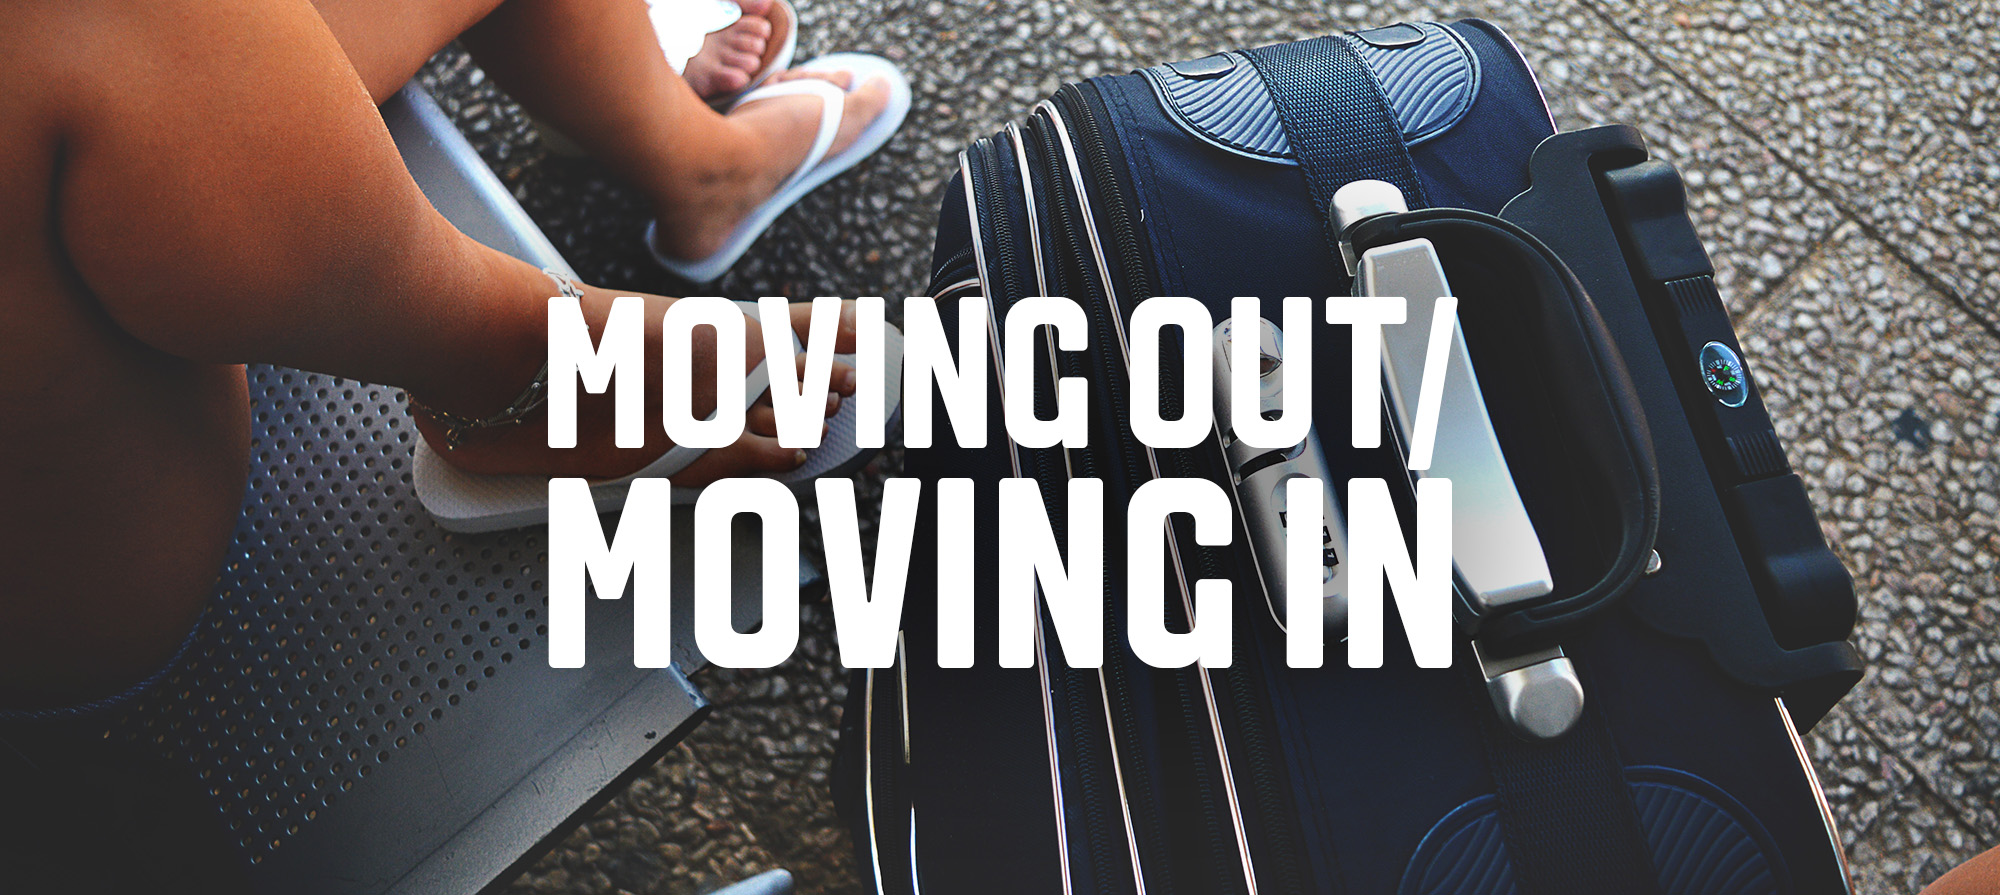 Moving Out/ Moving In